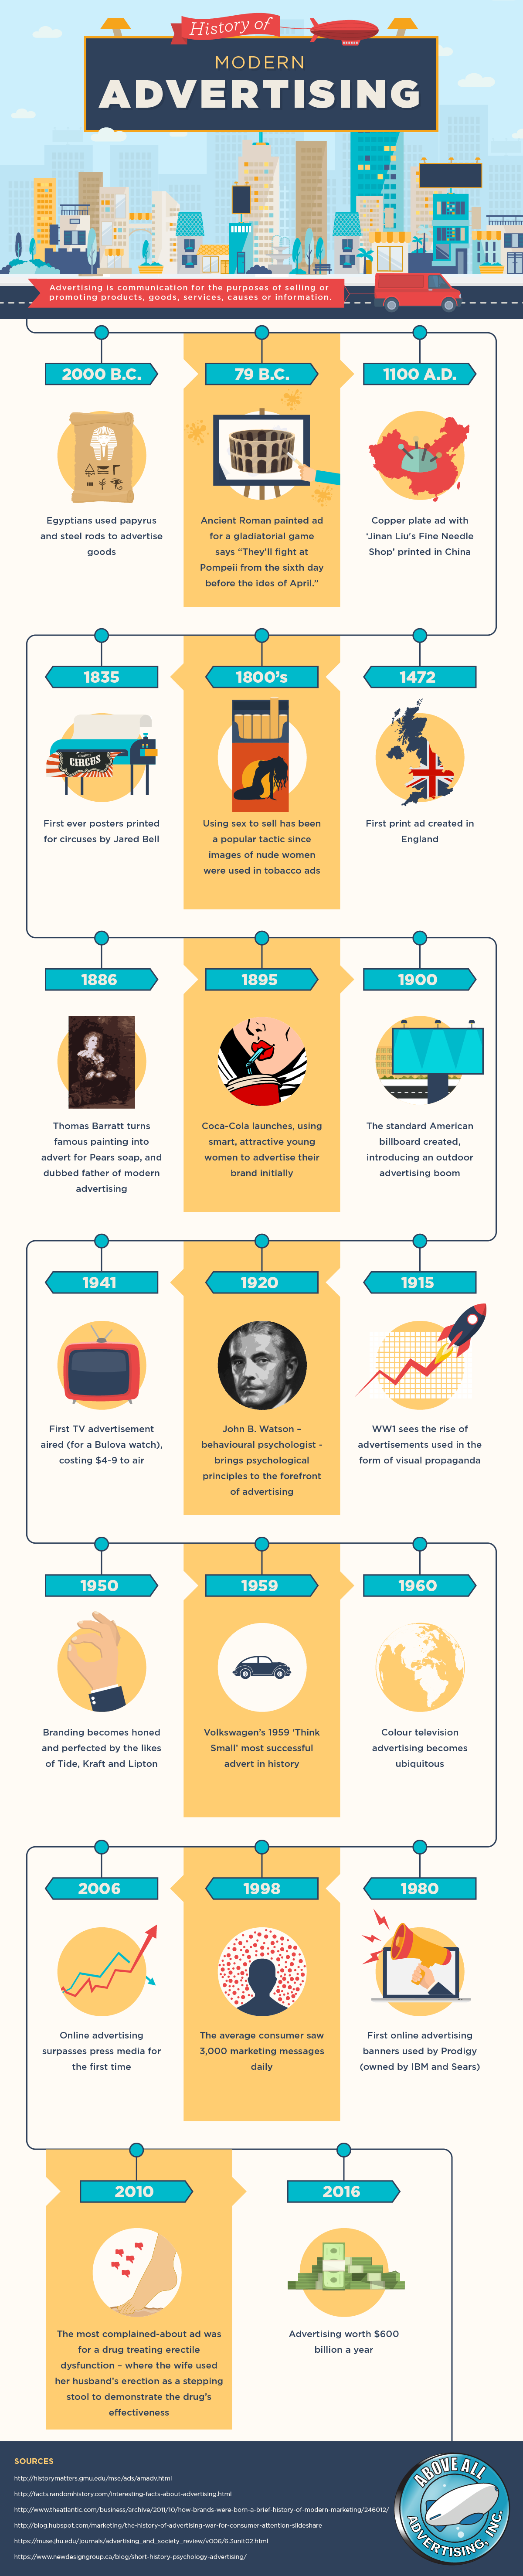 History Of Modern Adversting - #infographic